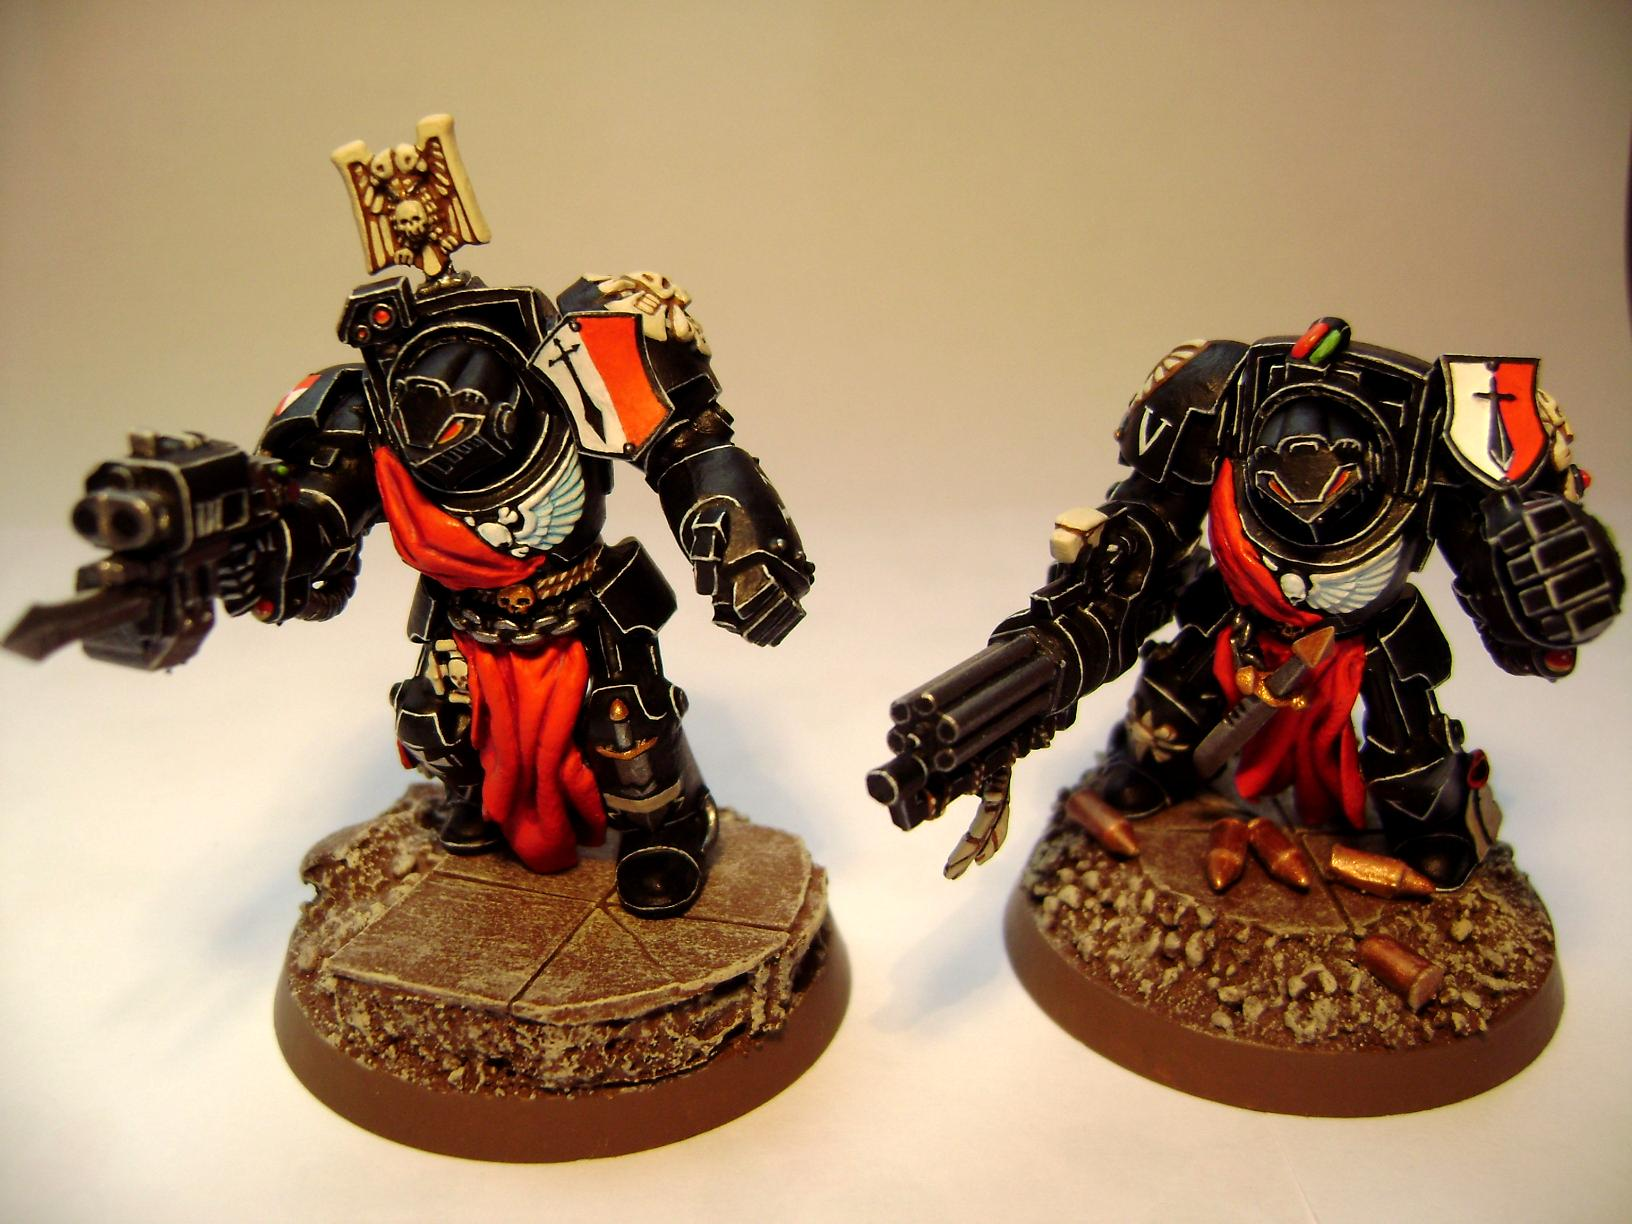 Assault Cannon, Power Fist, Powerfists, Space Marines, Storm Bolter, Tactical Dreadnought Armour, Terminator Armor